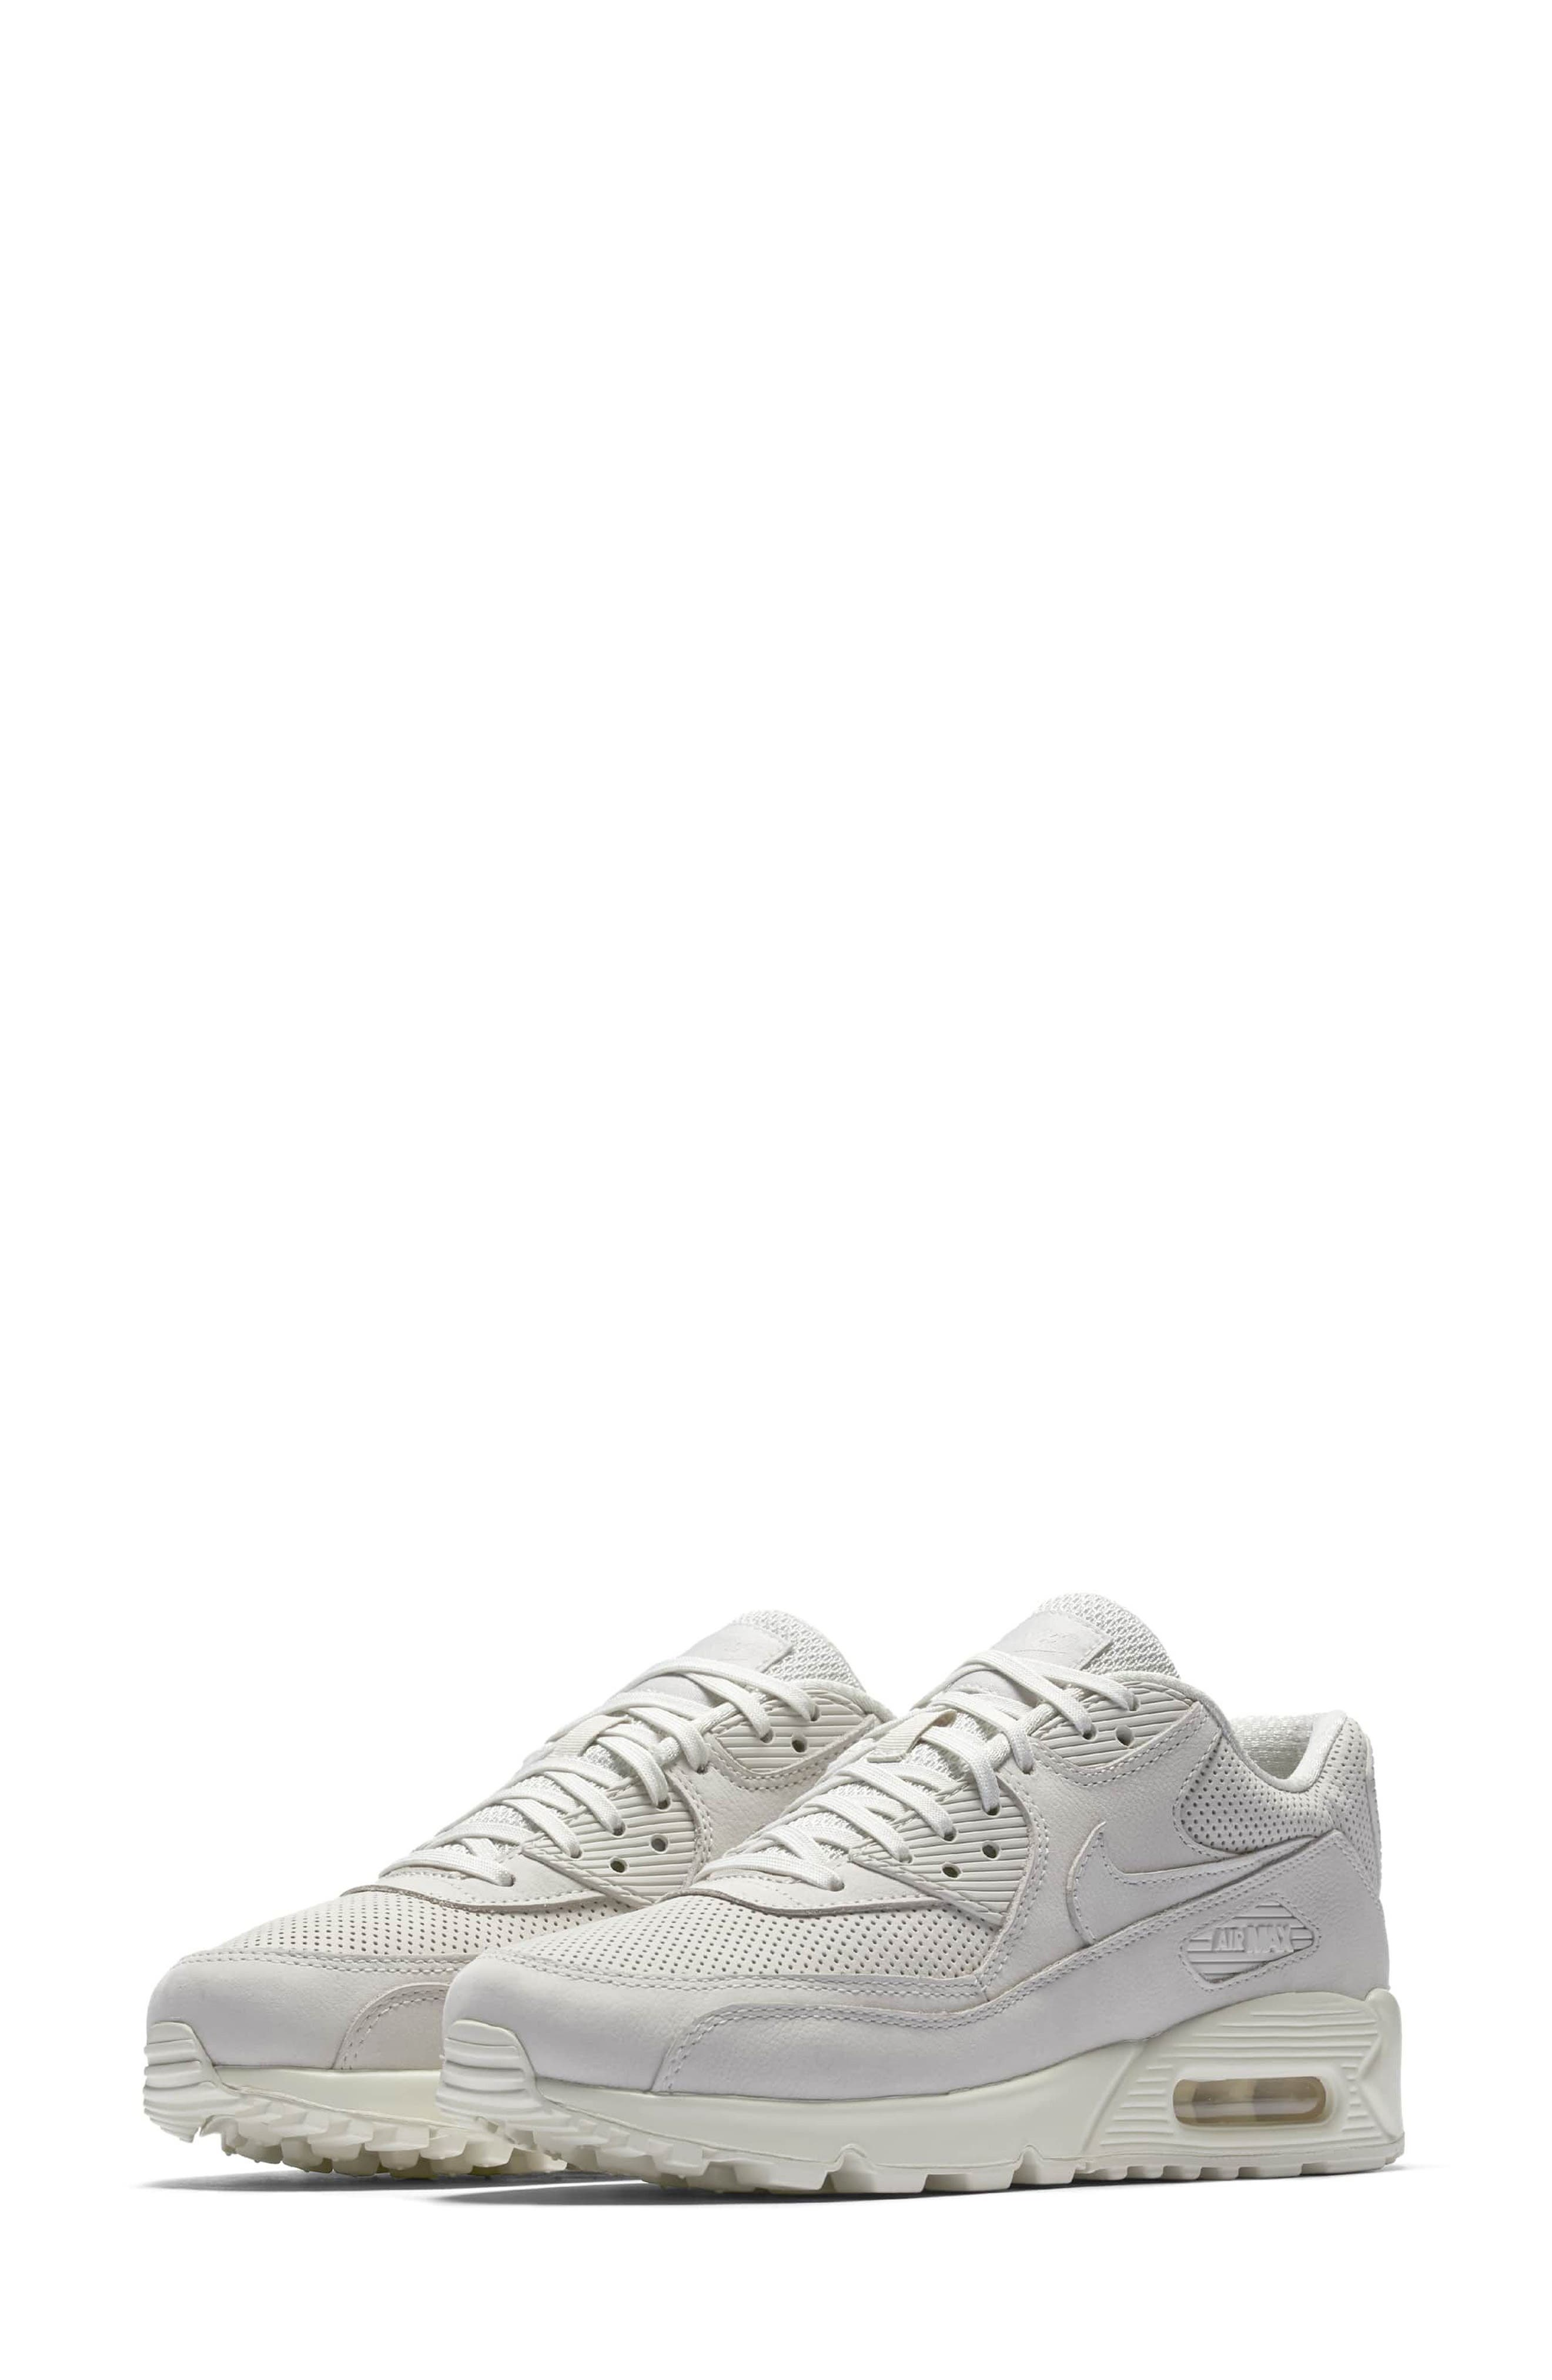 Main Image - Nike Air Max 90 Pinnacle Sneaker (Women's)